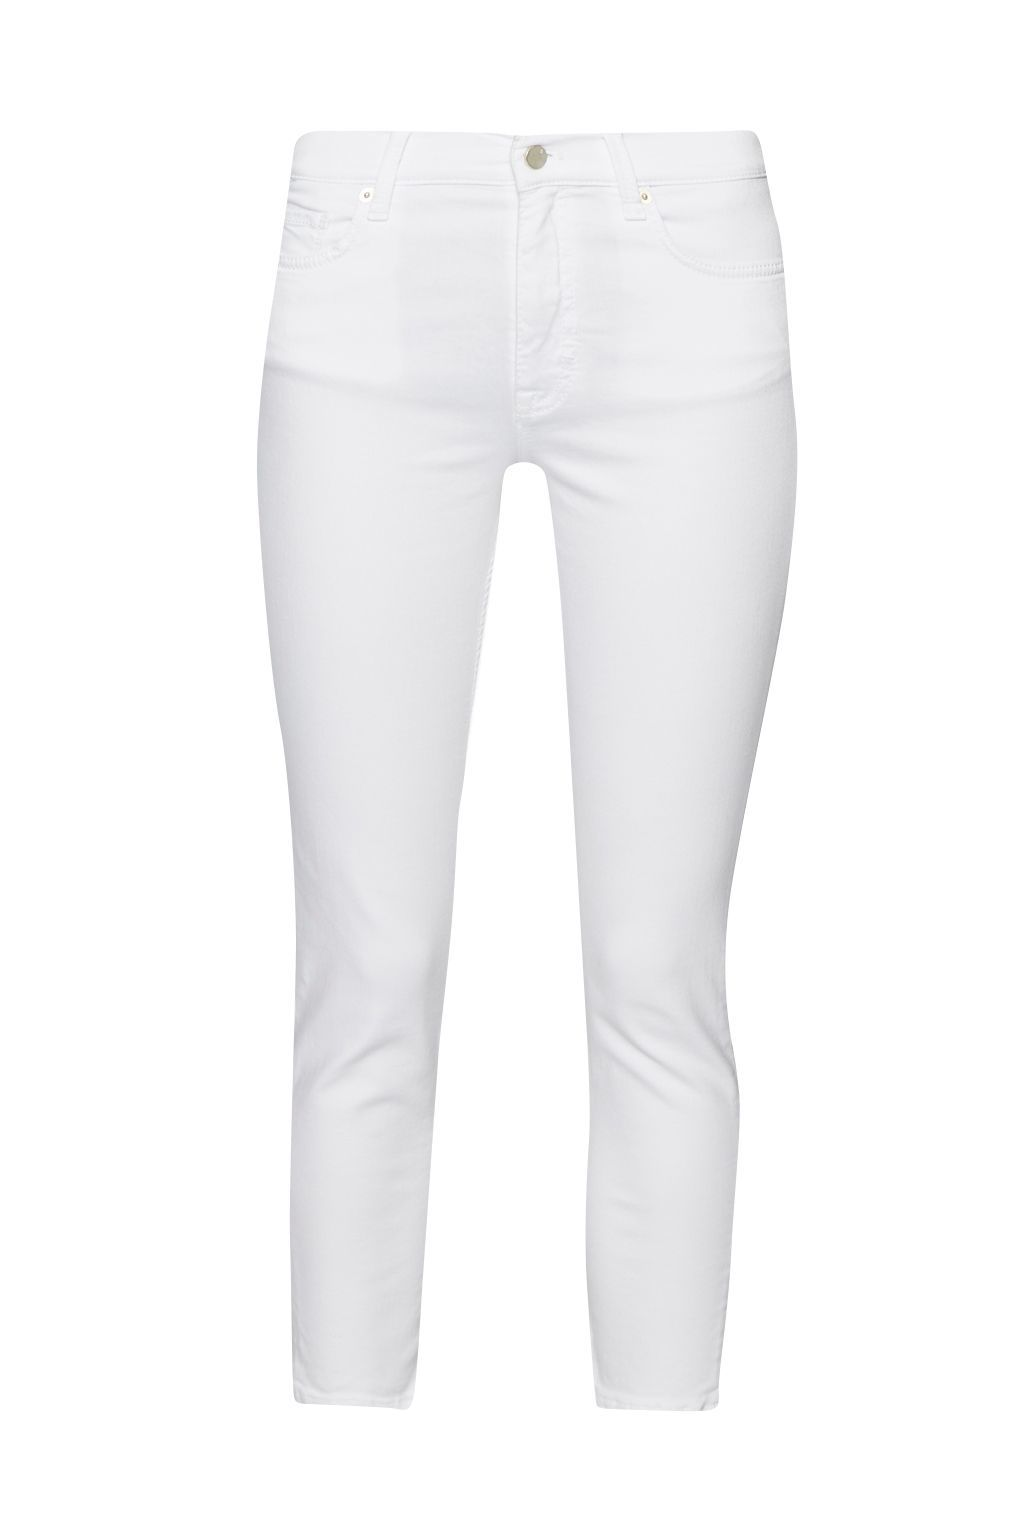 Skinny Stretch Rebound Denim, Off White - style: skinny leg; pattern: plain; pocket detail: traditional 5 pocket; waist: mid/regular rise; predominant colour: white; occasions: casual; length: calf length; fibres: cotton - stretch; texture group: denim; pattern type: fabric; season: s/s 2016; wardrobe: highlight